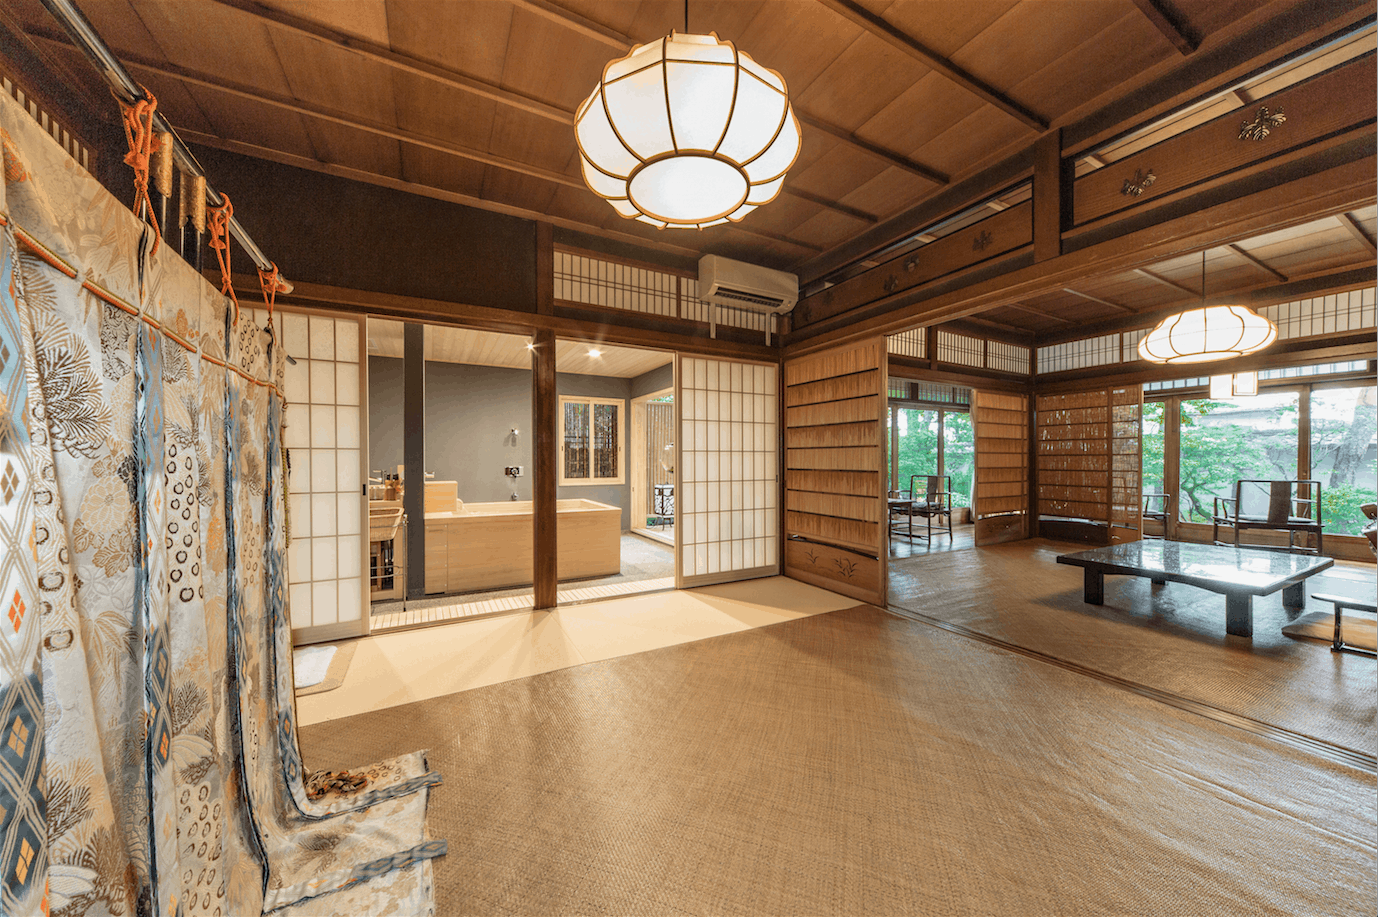 Japanese Airbnb